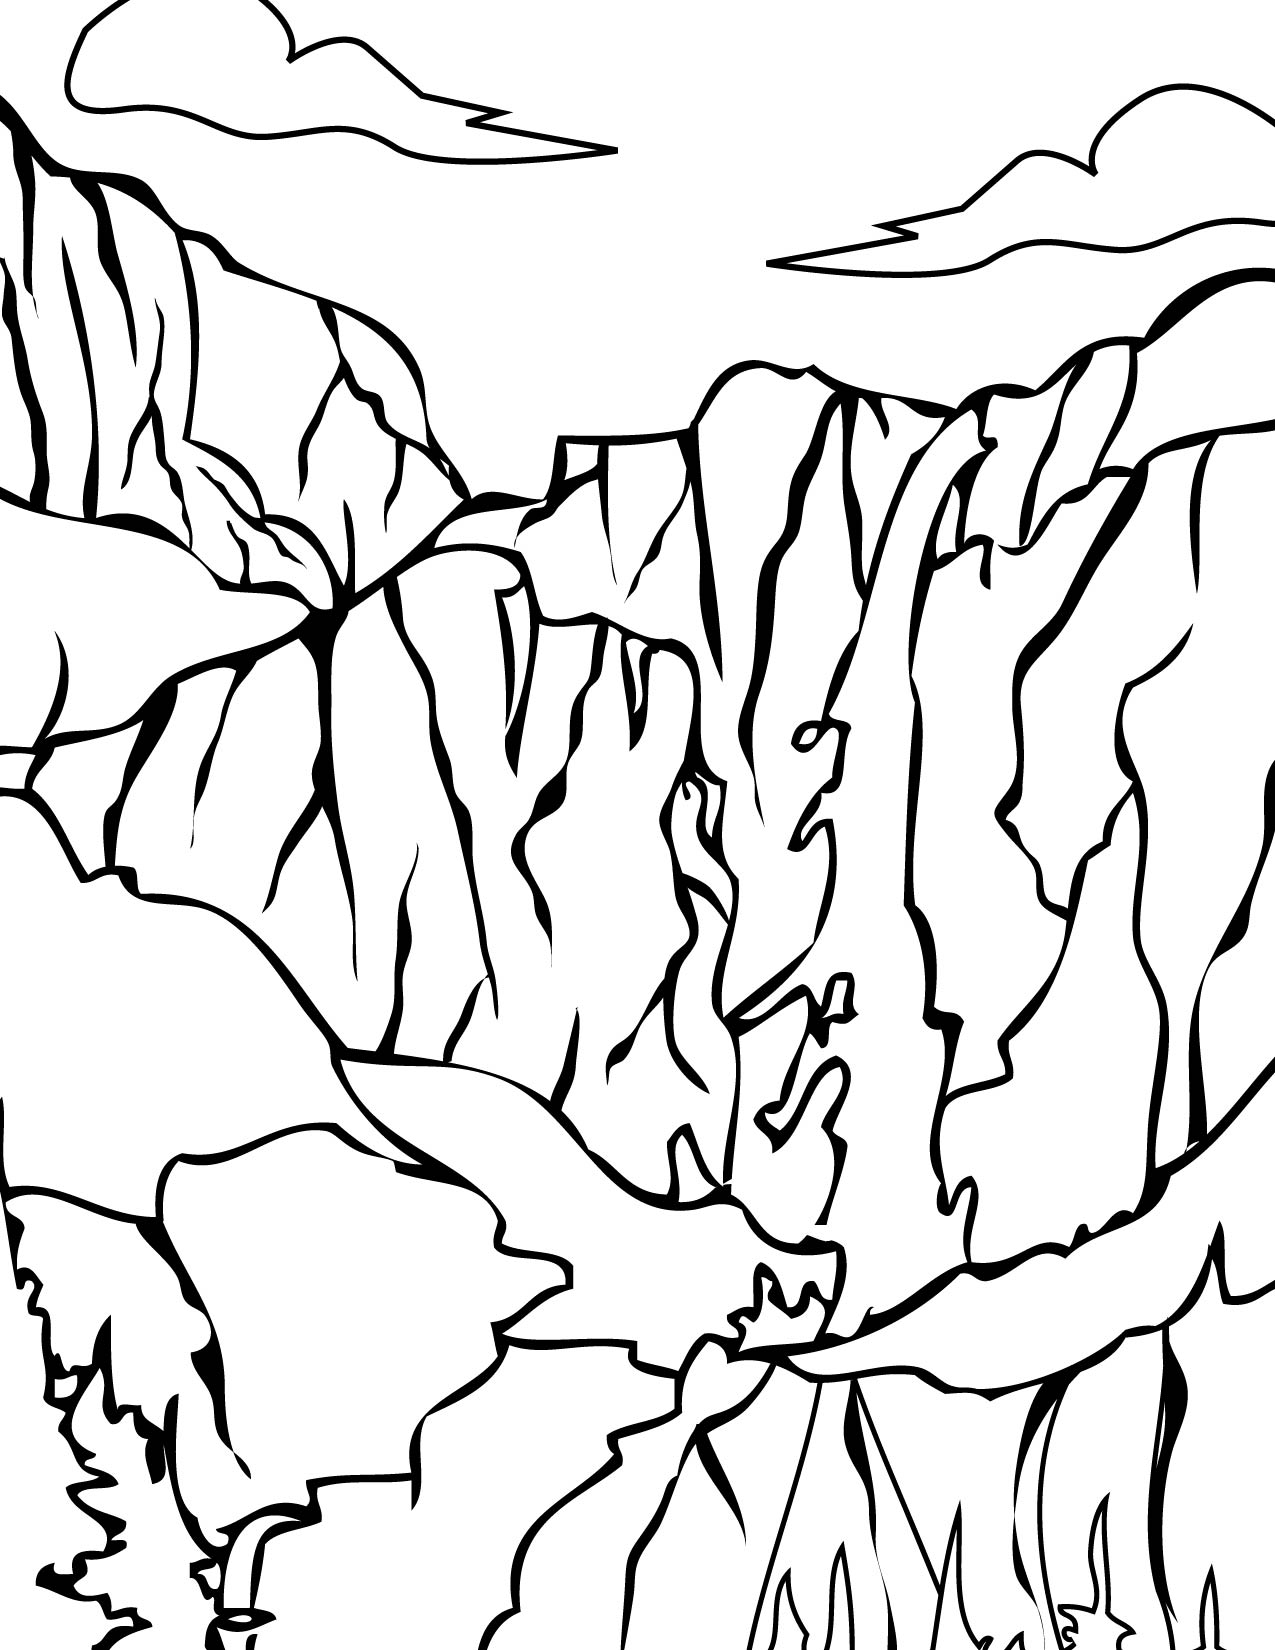 The Best Free Yosemite Coloring Page Images Download From